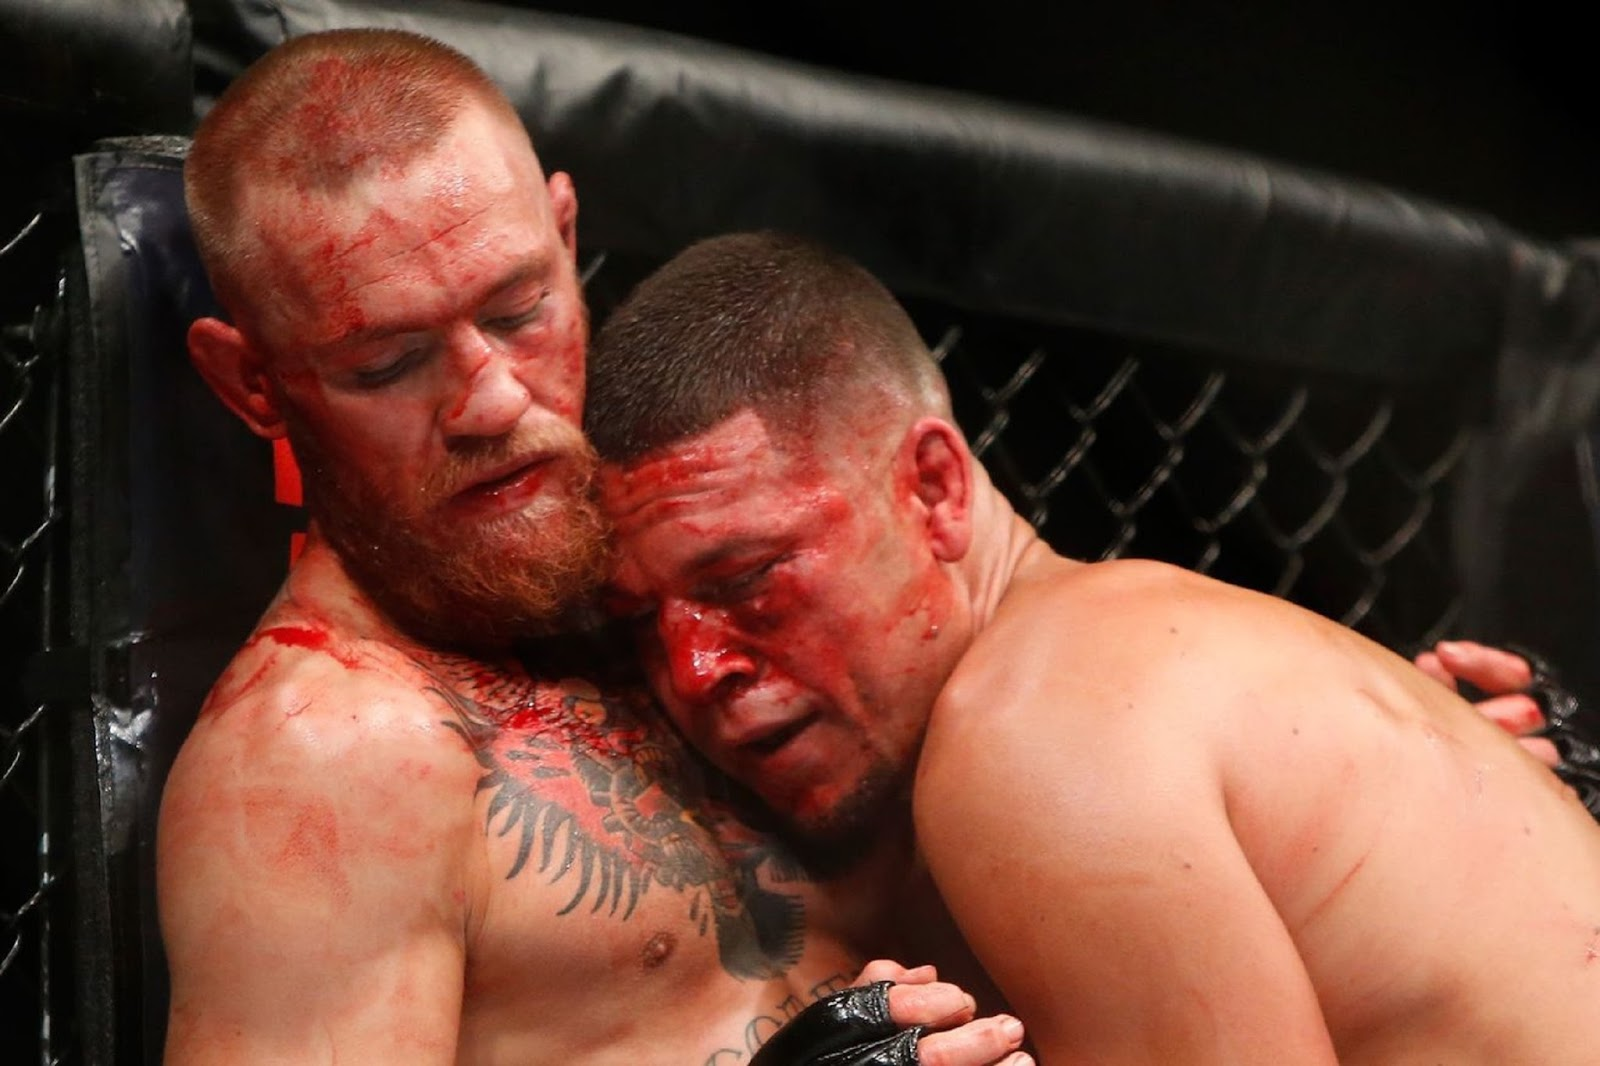 CONOR MCGREGOR VS. NATE DIAZ 3